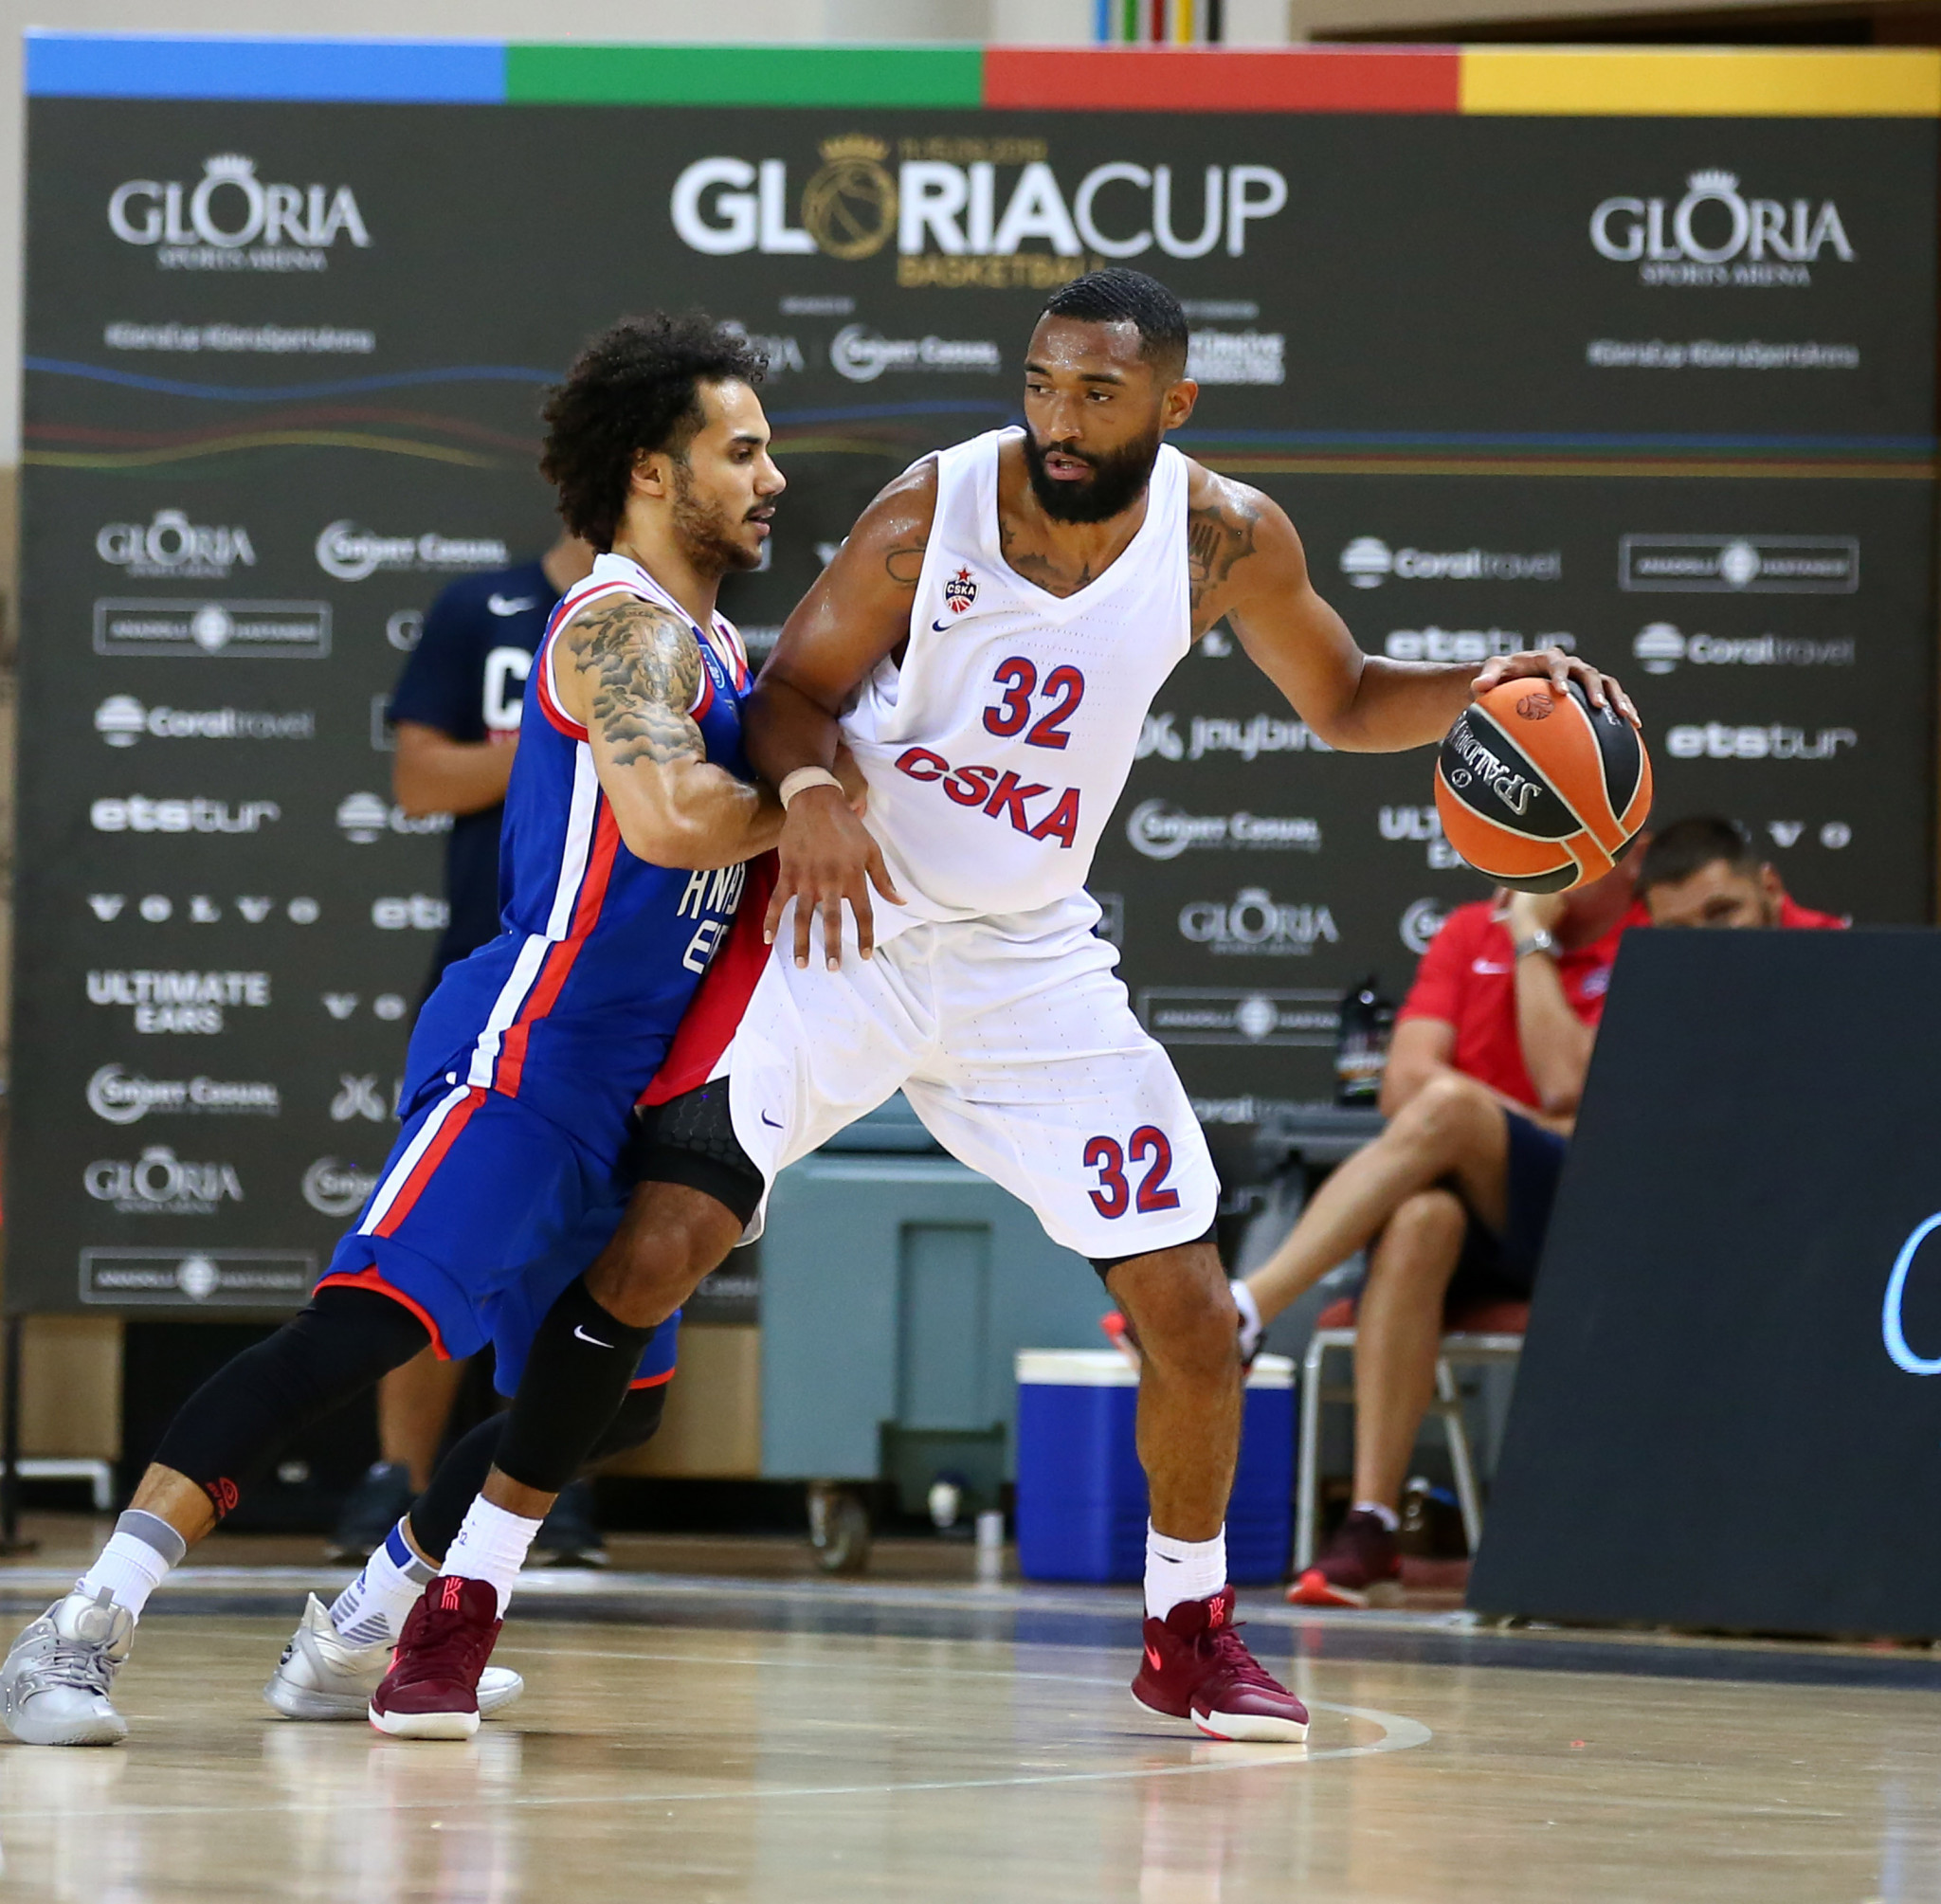 CSKA Moscow's Darrun Hilliard holds off the tackle of Mike James from Anadolu Efes at Gloria Sports Arena ©GSA